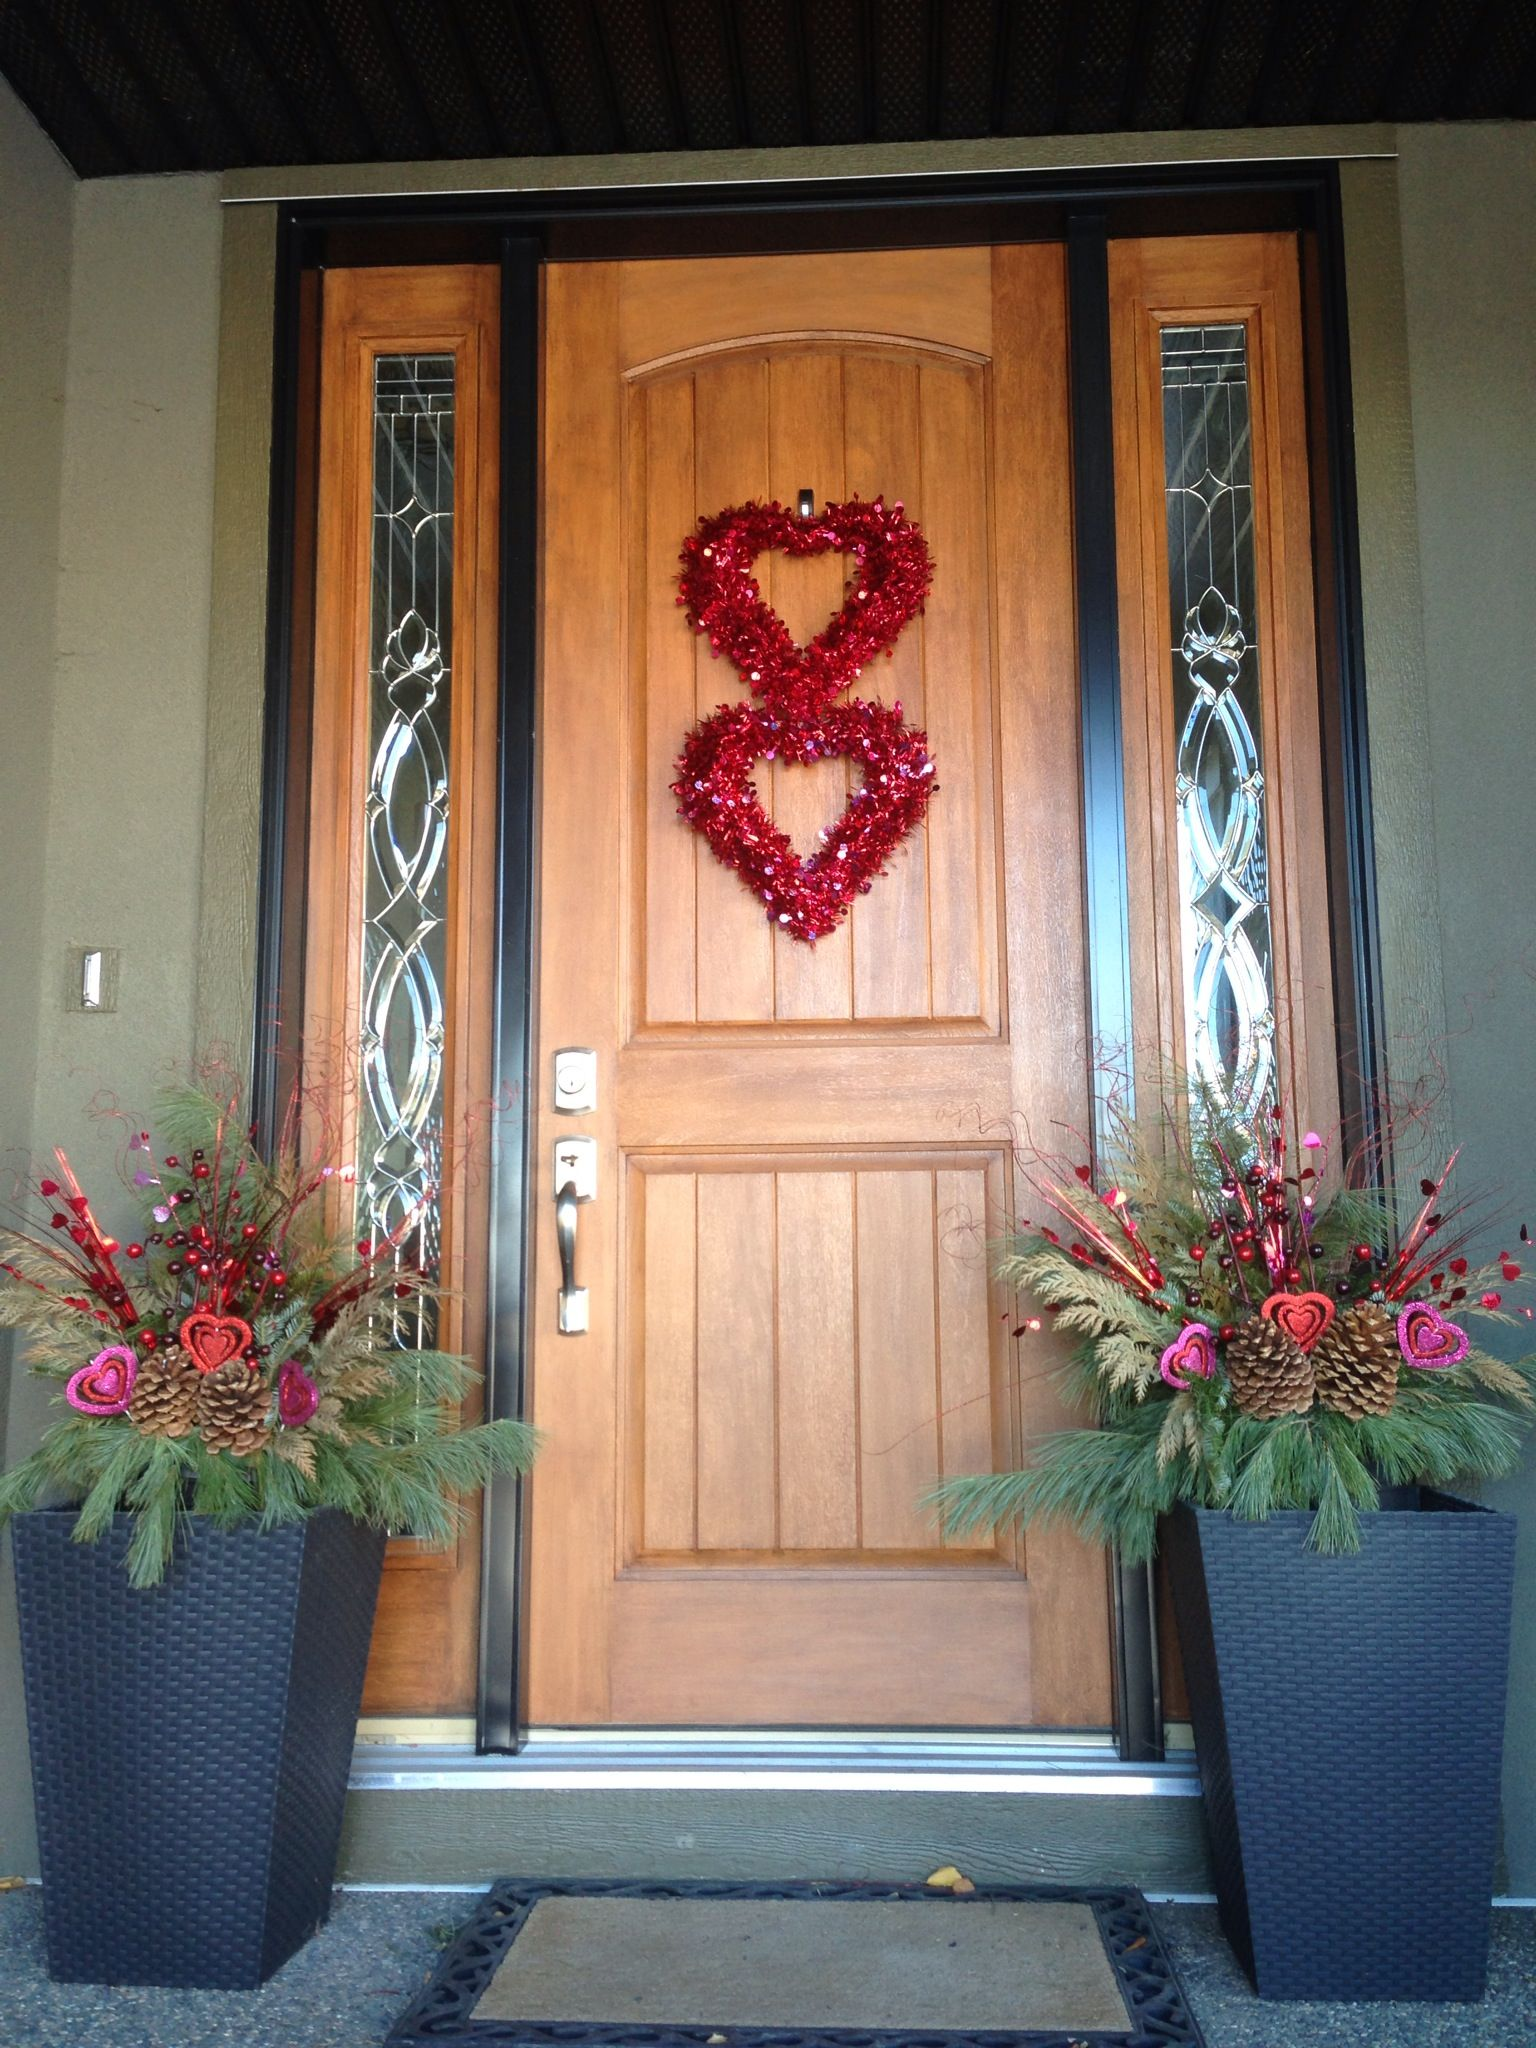 valentines outdoor decor using cheap stuff from michaels used two wreaths and tied them together - Valentine Outdoor Decorations